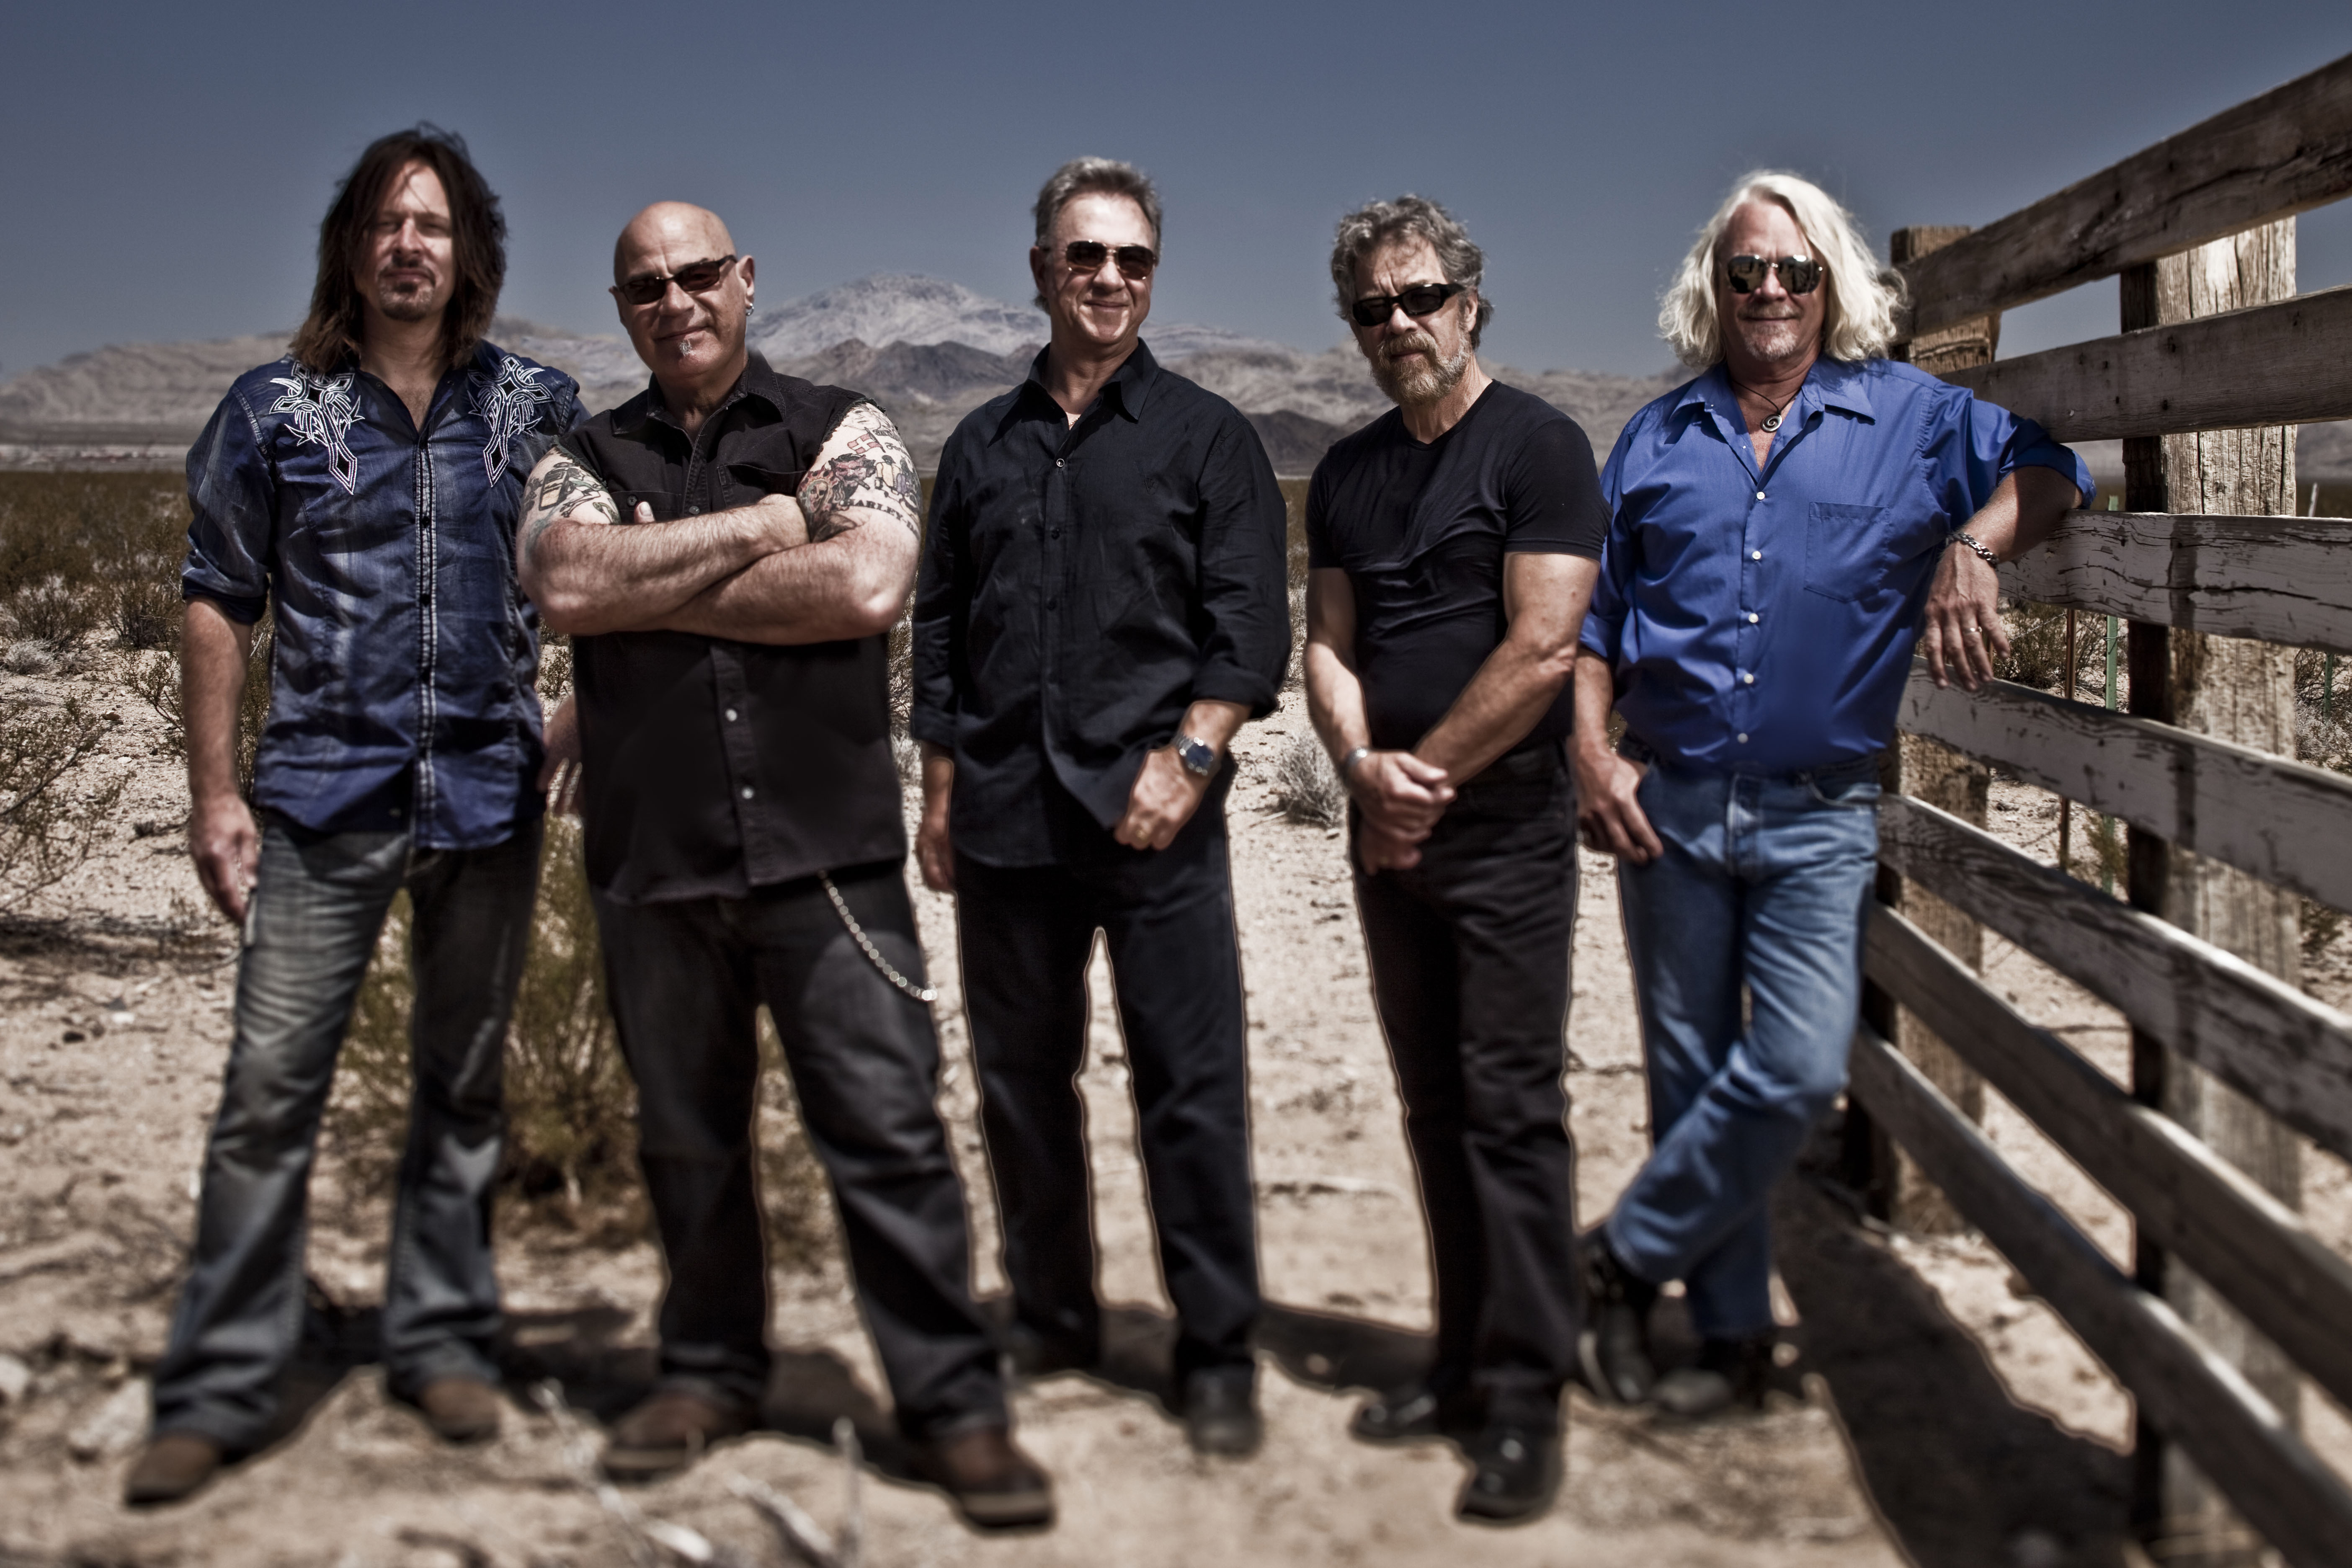 Keepin' on Chooglin':  Reconstituted '60s rock giant Creedence Clearwater Revisited makes a stop in Pullman as part of its world tour